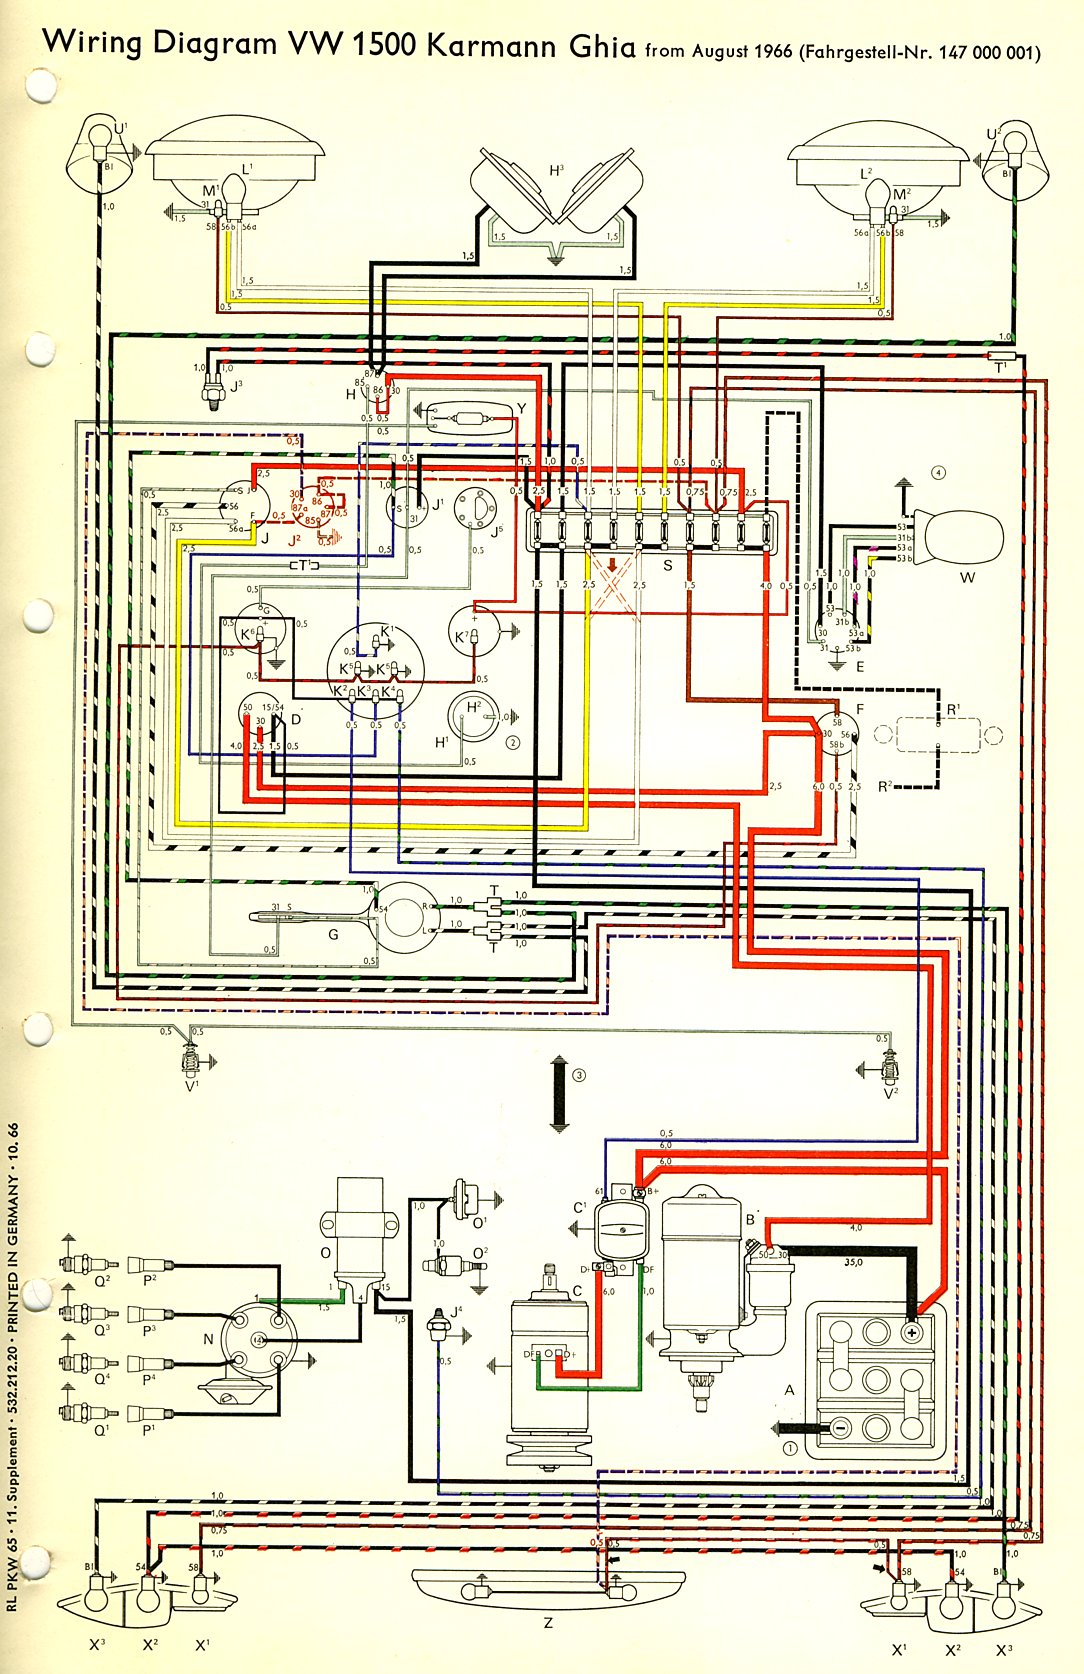 Wrg 6760 1958 Jeep Cj5 Wiring Schematic border=